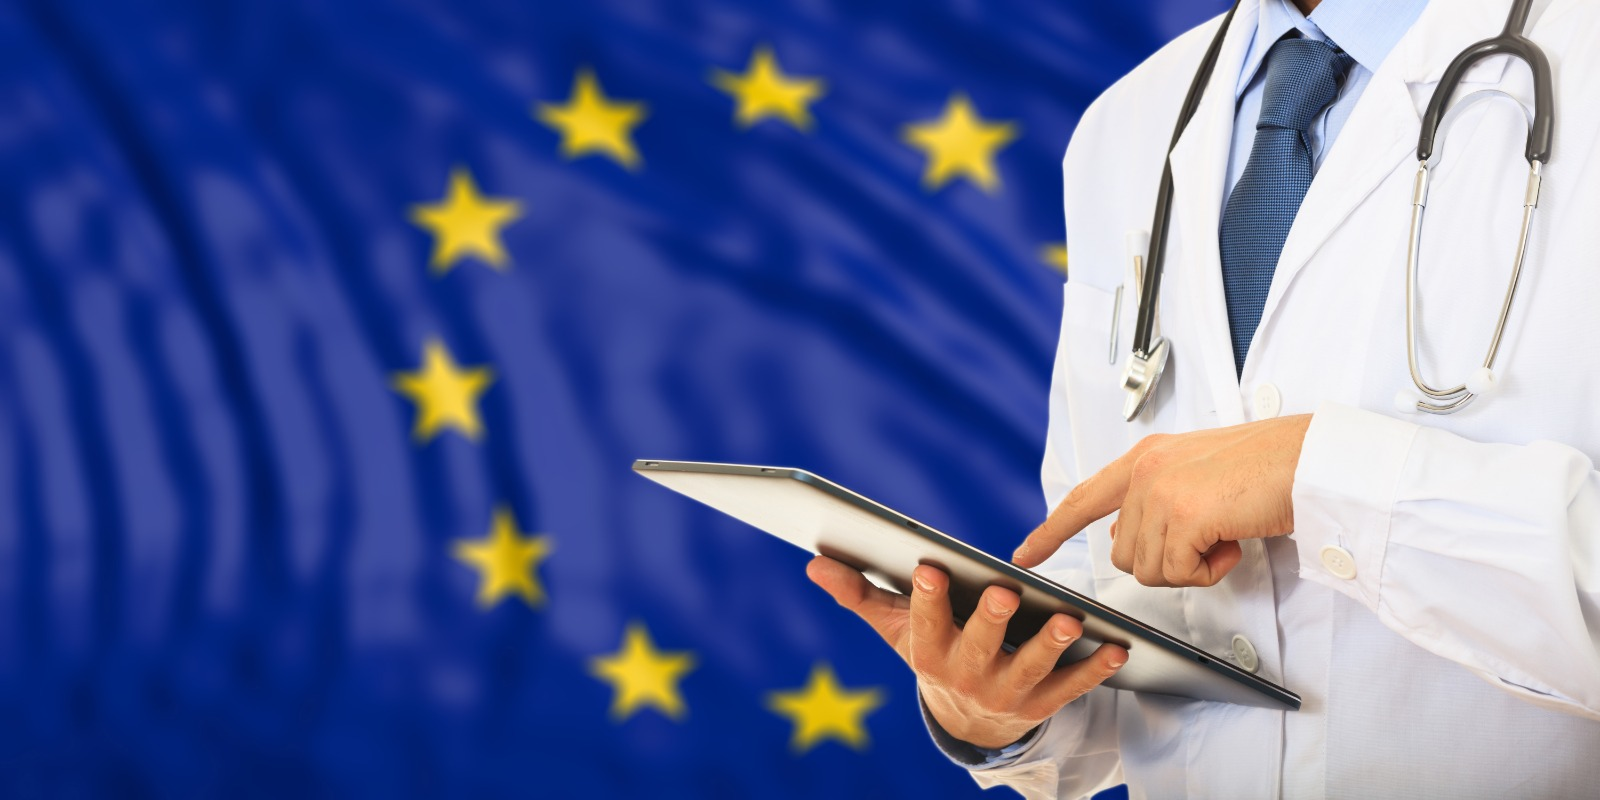 Public consultation: European citizens, let's envision the future of healthcare delivery together!